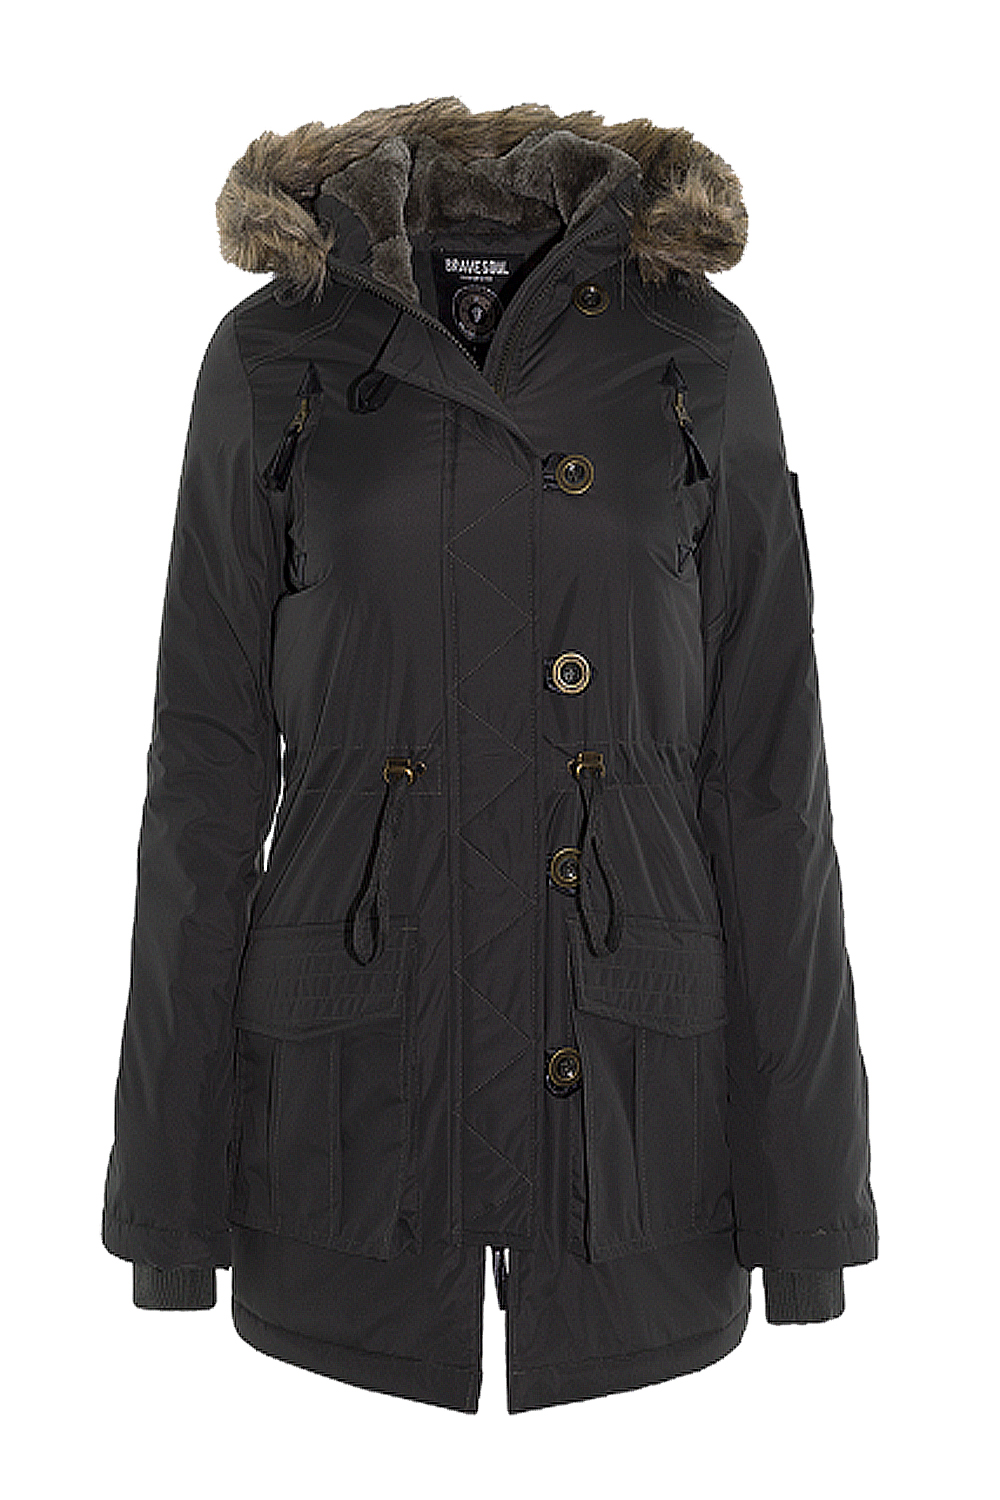 Brave-Soul-Ladies-Military-Parker-Jacket-Faux-Fur-Hooded-Quilted-Warm-Parka-Coat